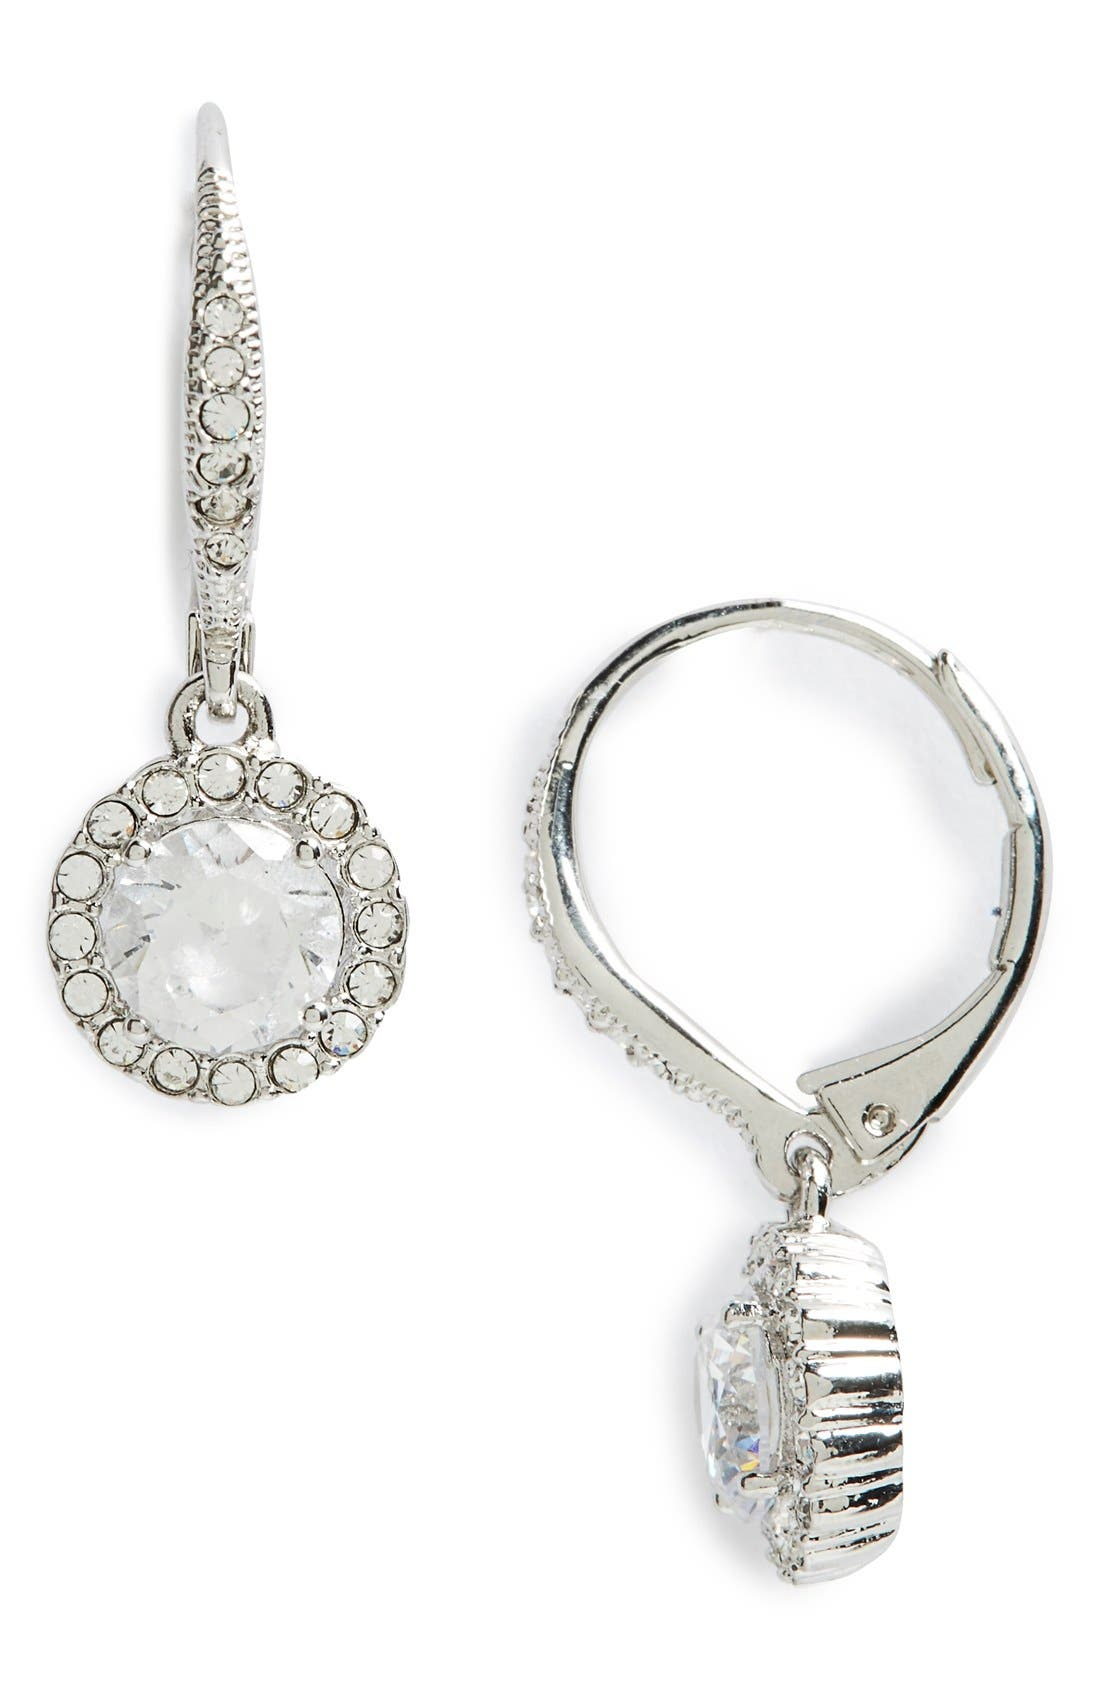 Cubic Zirconia Drop Earrings,                             Main thumbnail 1, color,                             SILVER/ CLEAR CRYSTAL